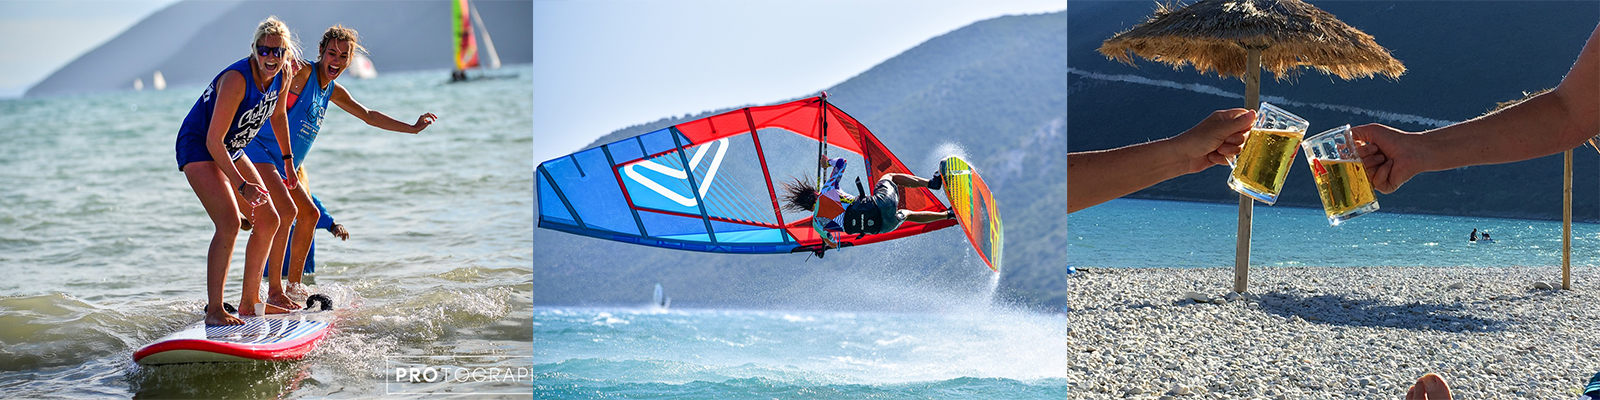 Tandem Windsurfing Looping and SUP montage image